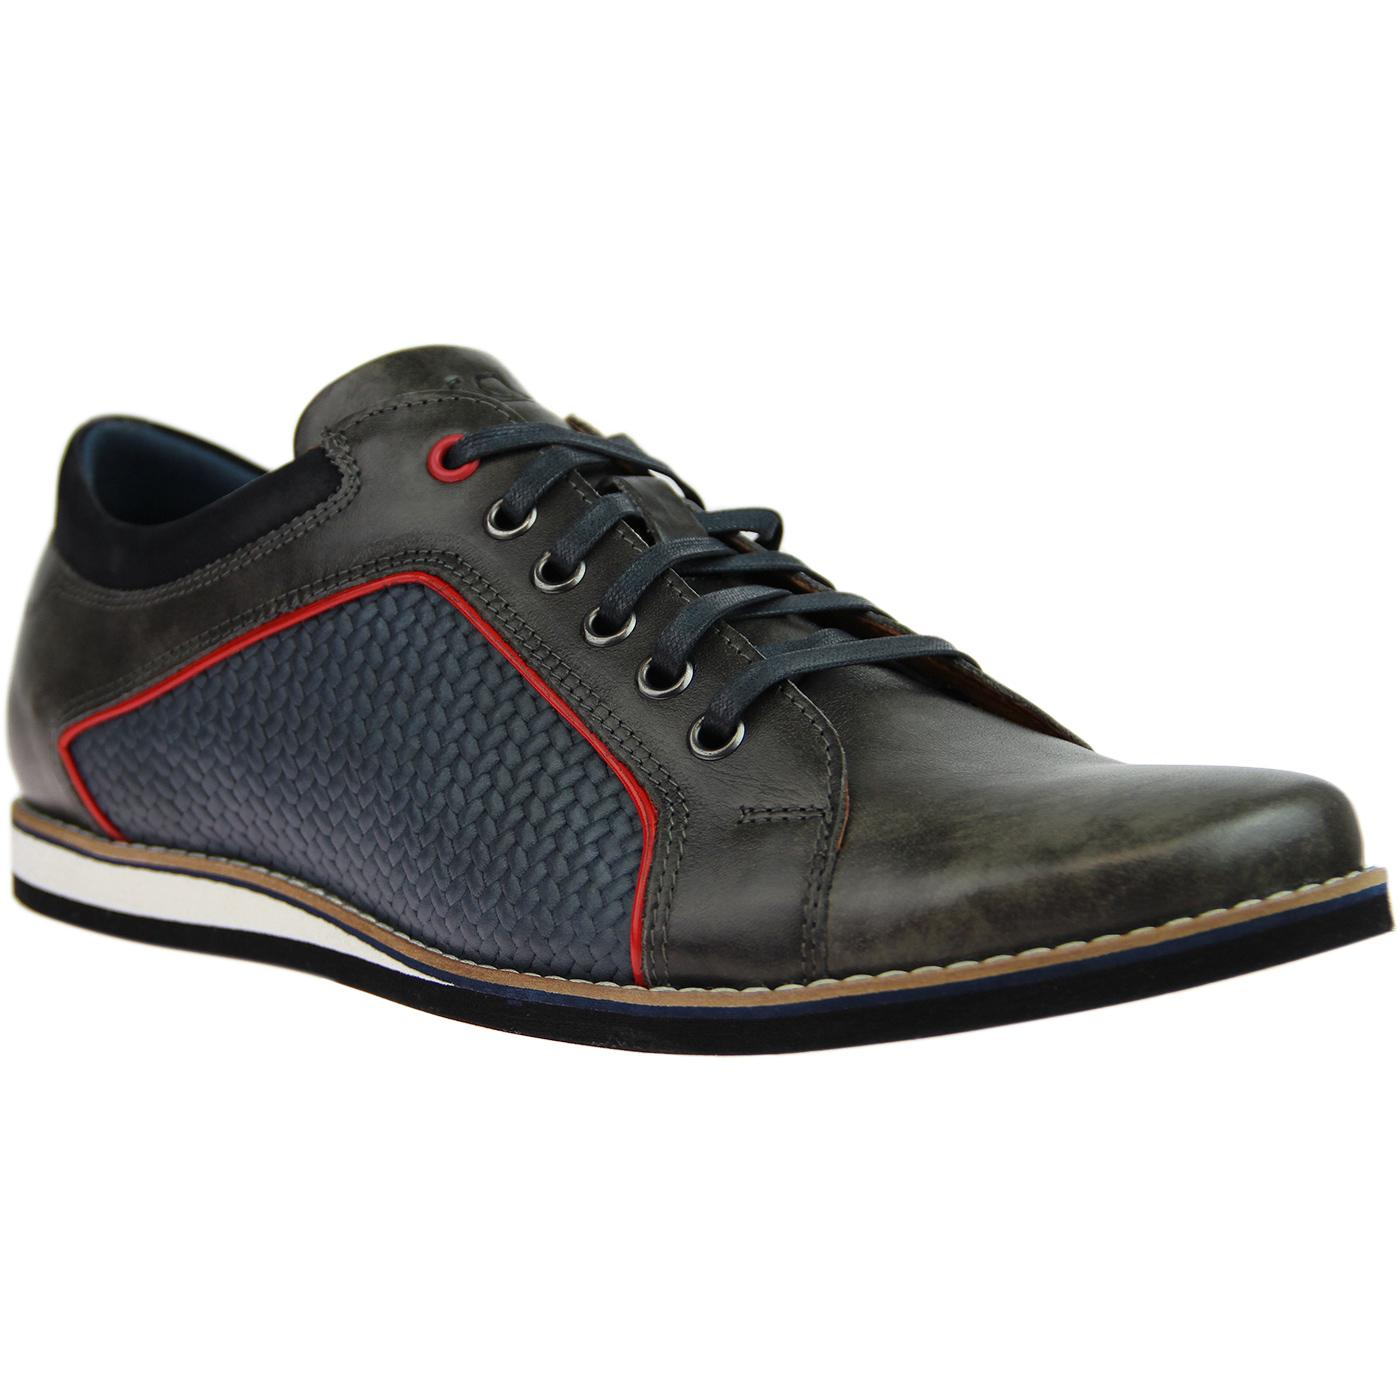 LACUZZO Retro Weave Northern Soul Trainer Shoes G